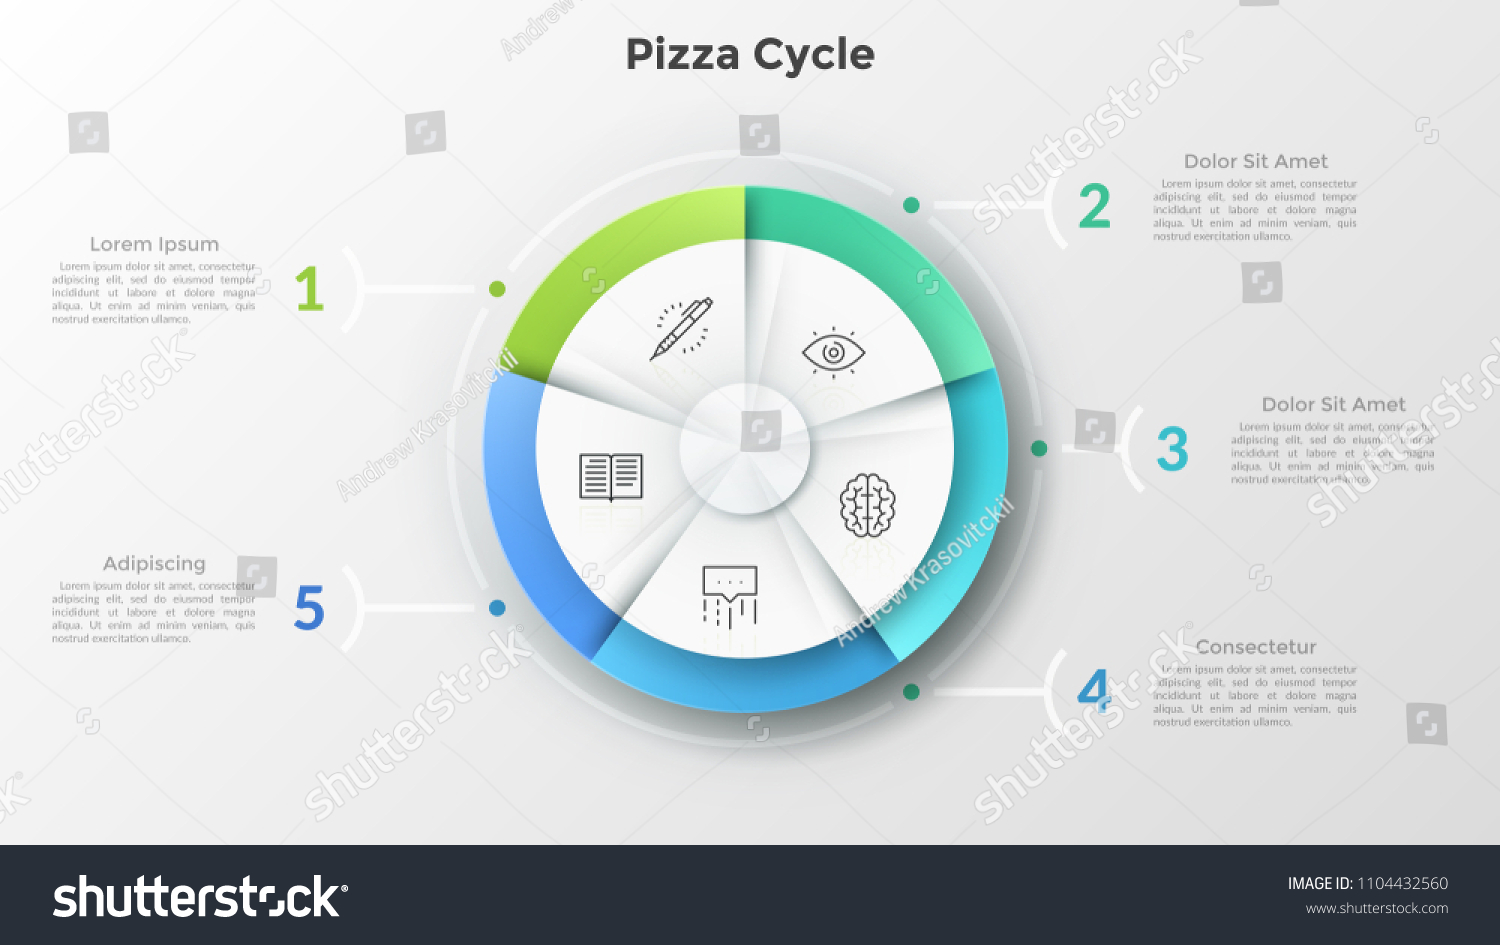 stock-vector-round-pizza-chart-divided-into-equal-sectors-with-linear-symbols-inside-connected-to-numbered-1104432560.jpg